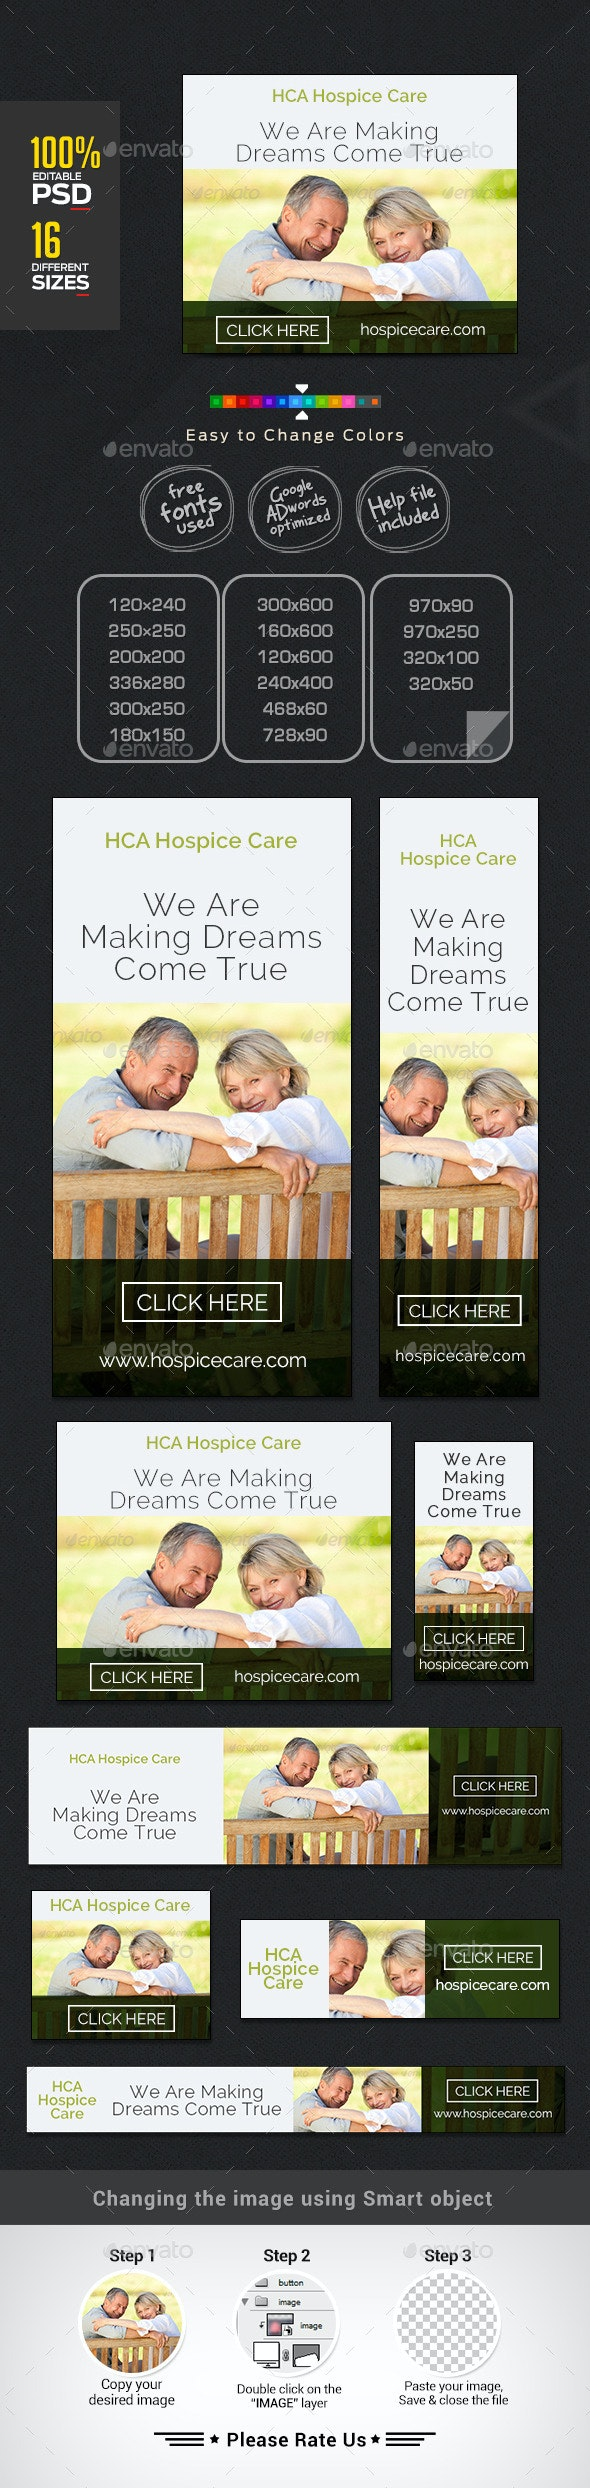 Hospice Care Web Banner Design Set - Banners & Ads Web Elements